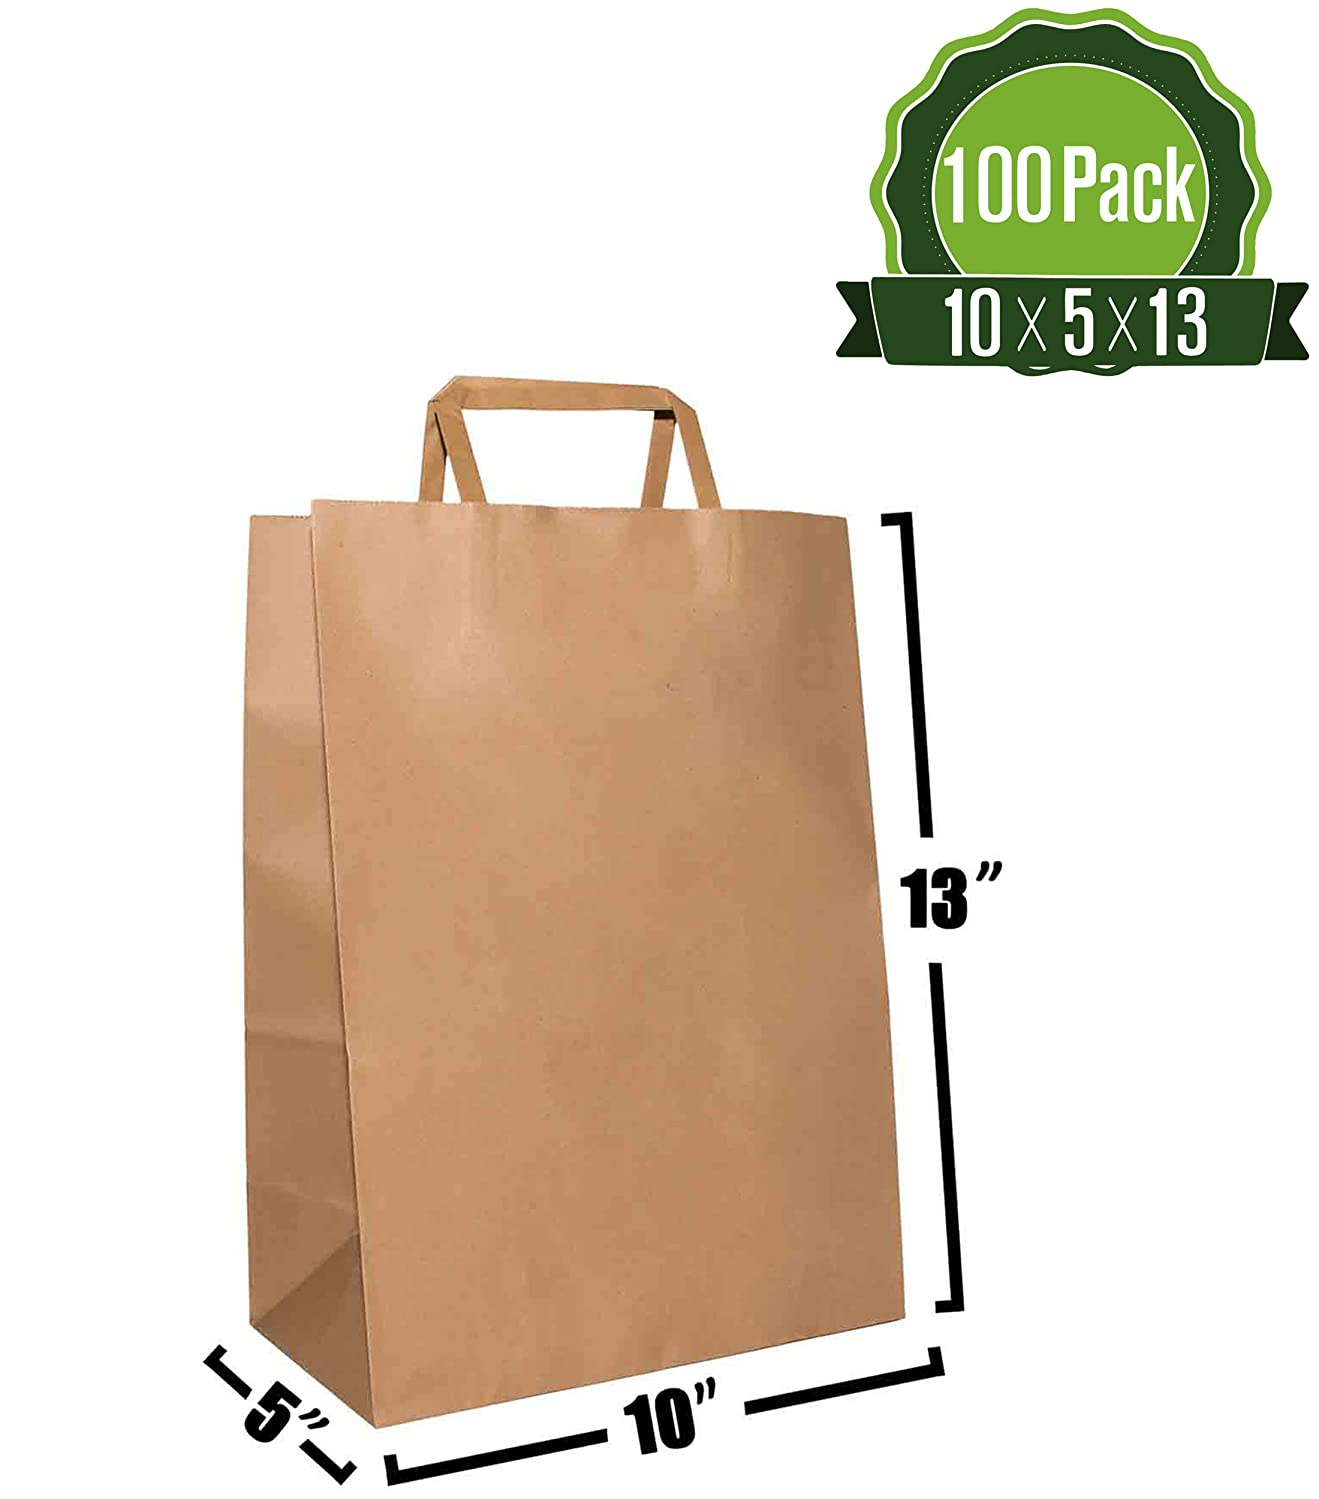 Kraft Paper Gift Bags Bulk with Flat Handles [ Ideal for Shopping, Packaging, Retail, Party, Craft, Gifts, Wedding, Recycled, Business, Goody and Merchandise Bag] (100 Count) (Brown)